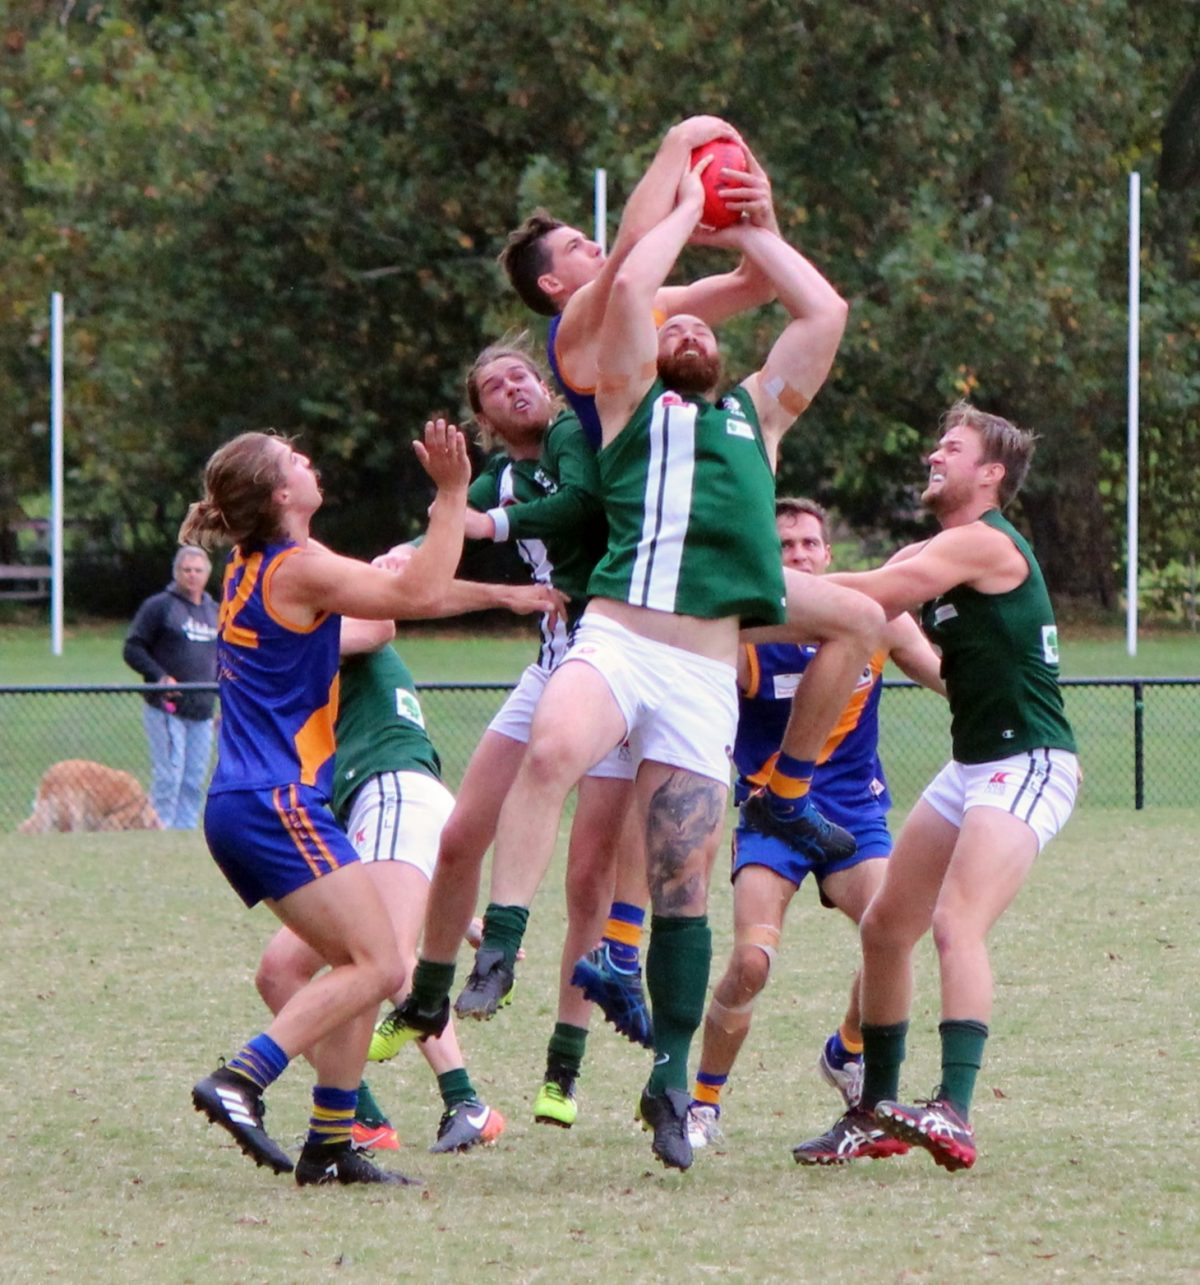 All sides lost to Lilydale